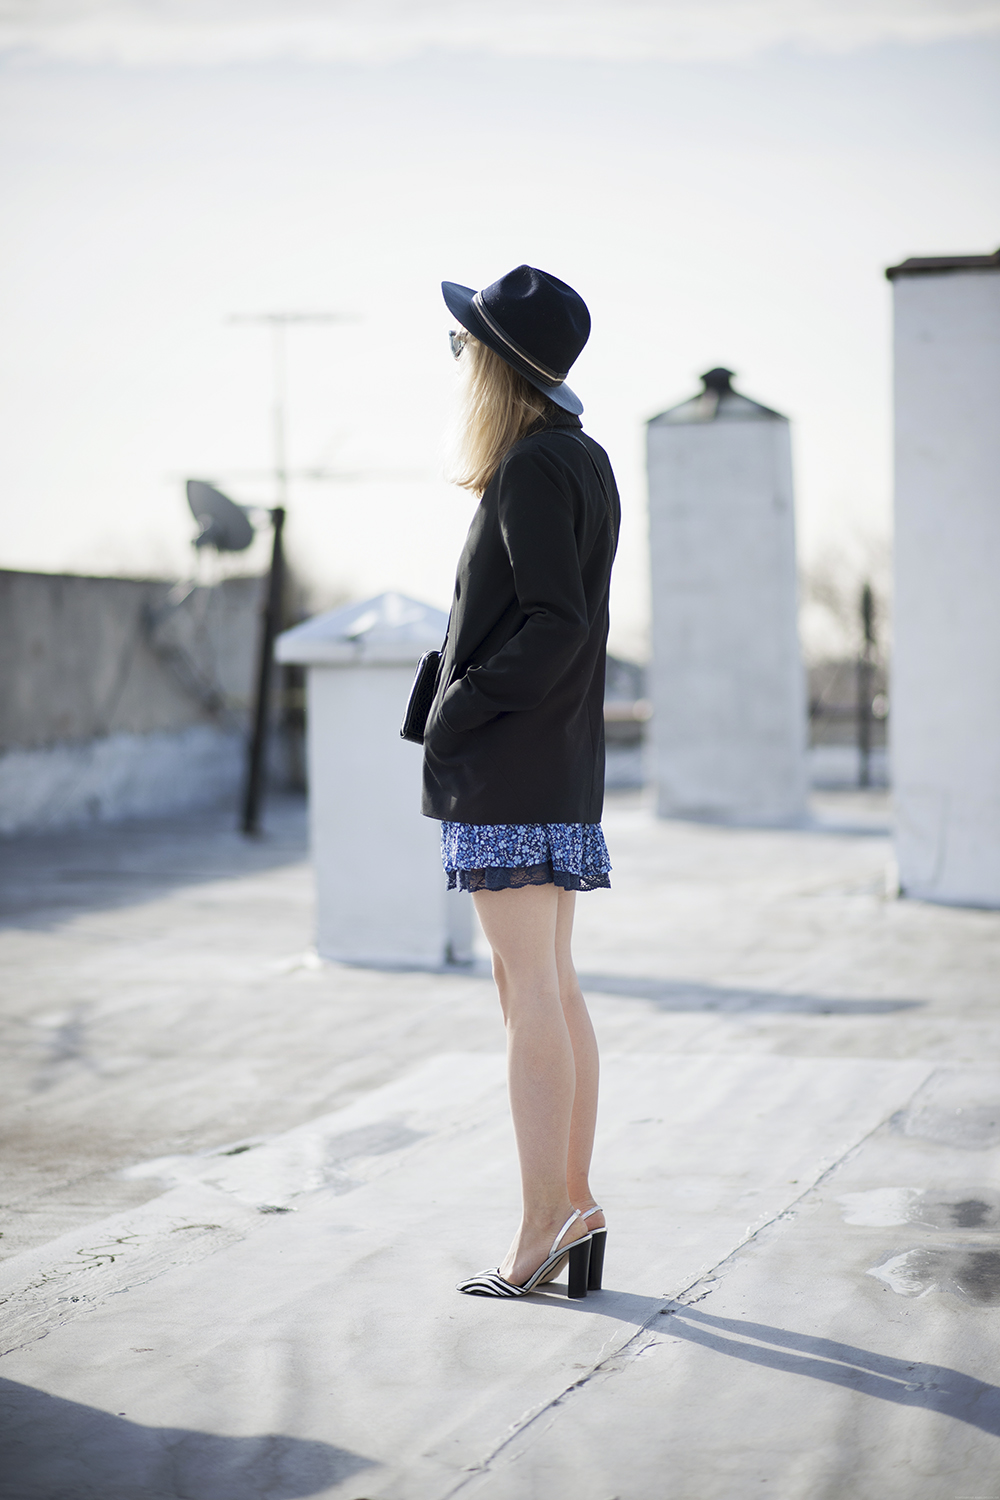 SPRING DRESS(ING) | Just Another Fashion Blog